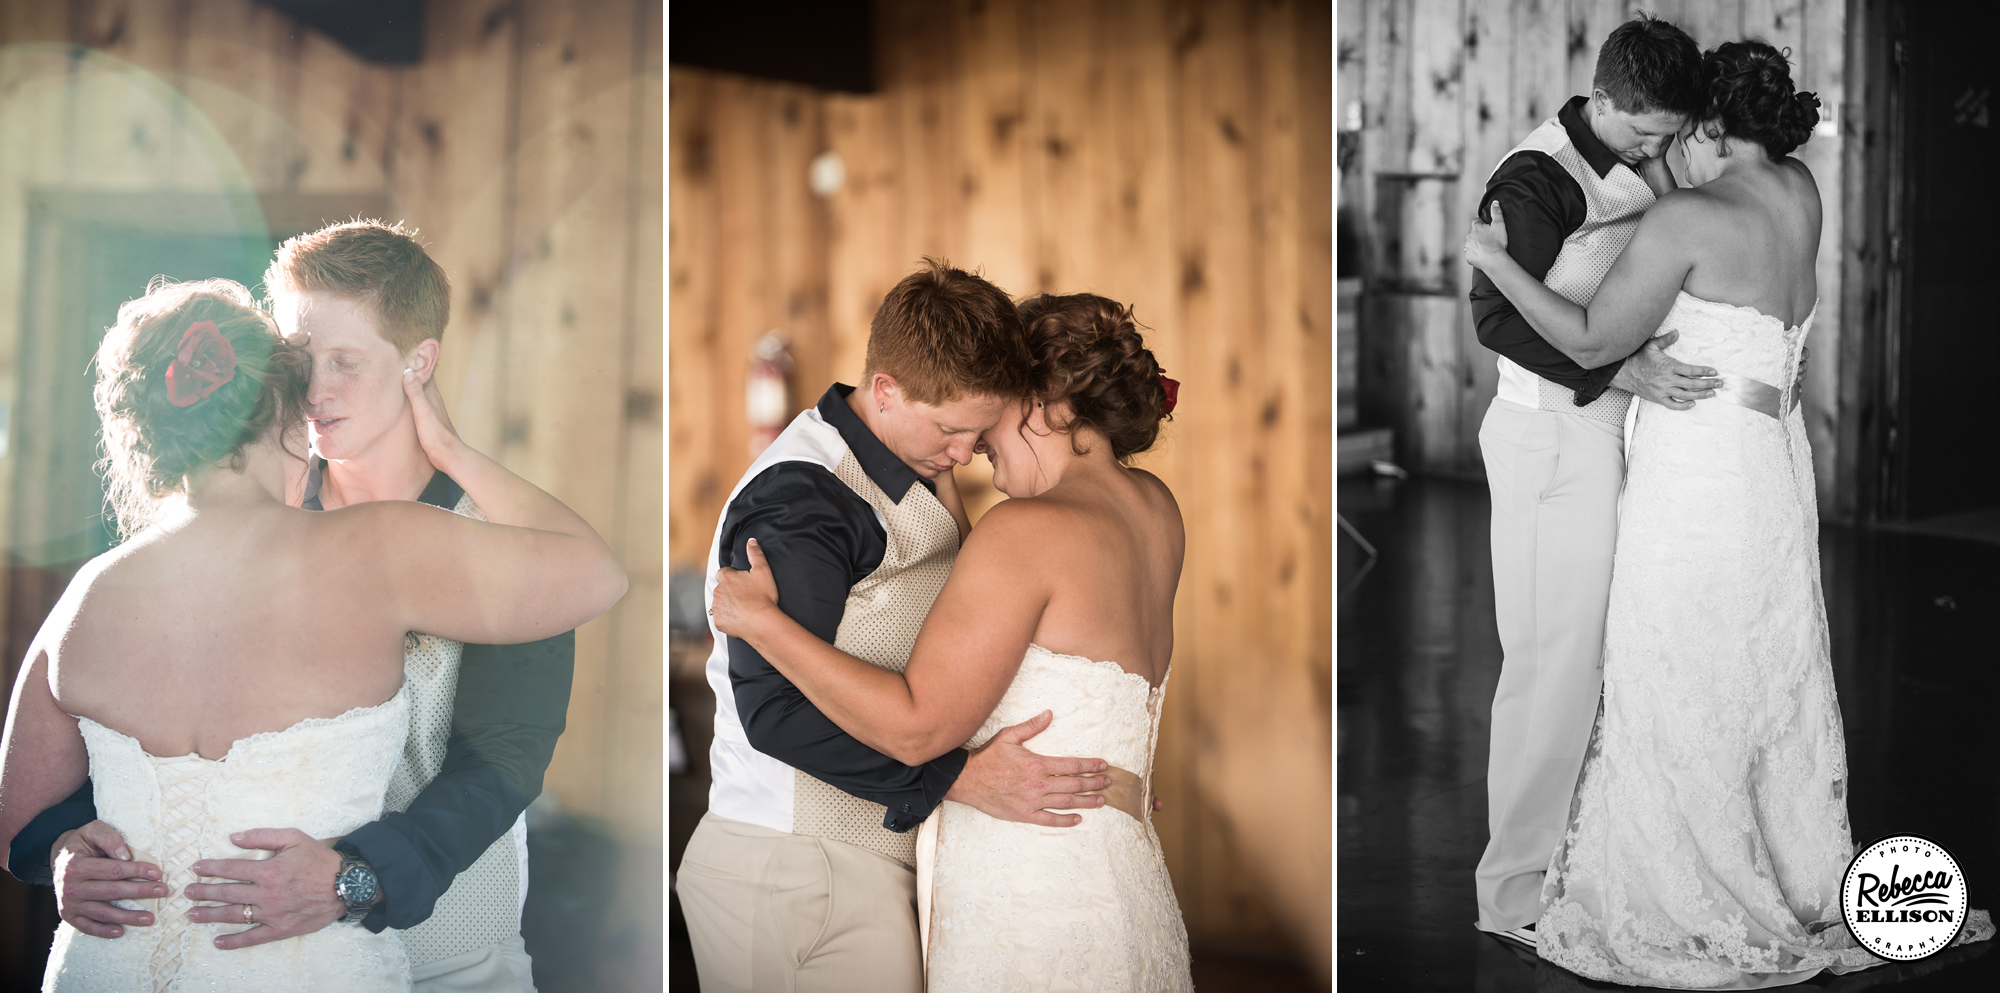 Same Sex couple dances at their wedding reception at the Hoodsport Beach Club featuring a belted white wedding dress photographed by Seattle wedding photographer Rebecca Ellison